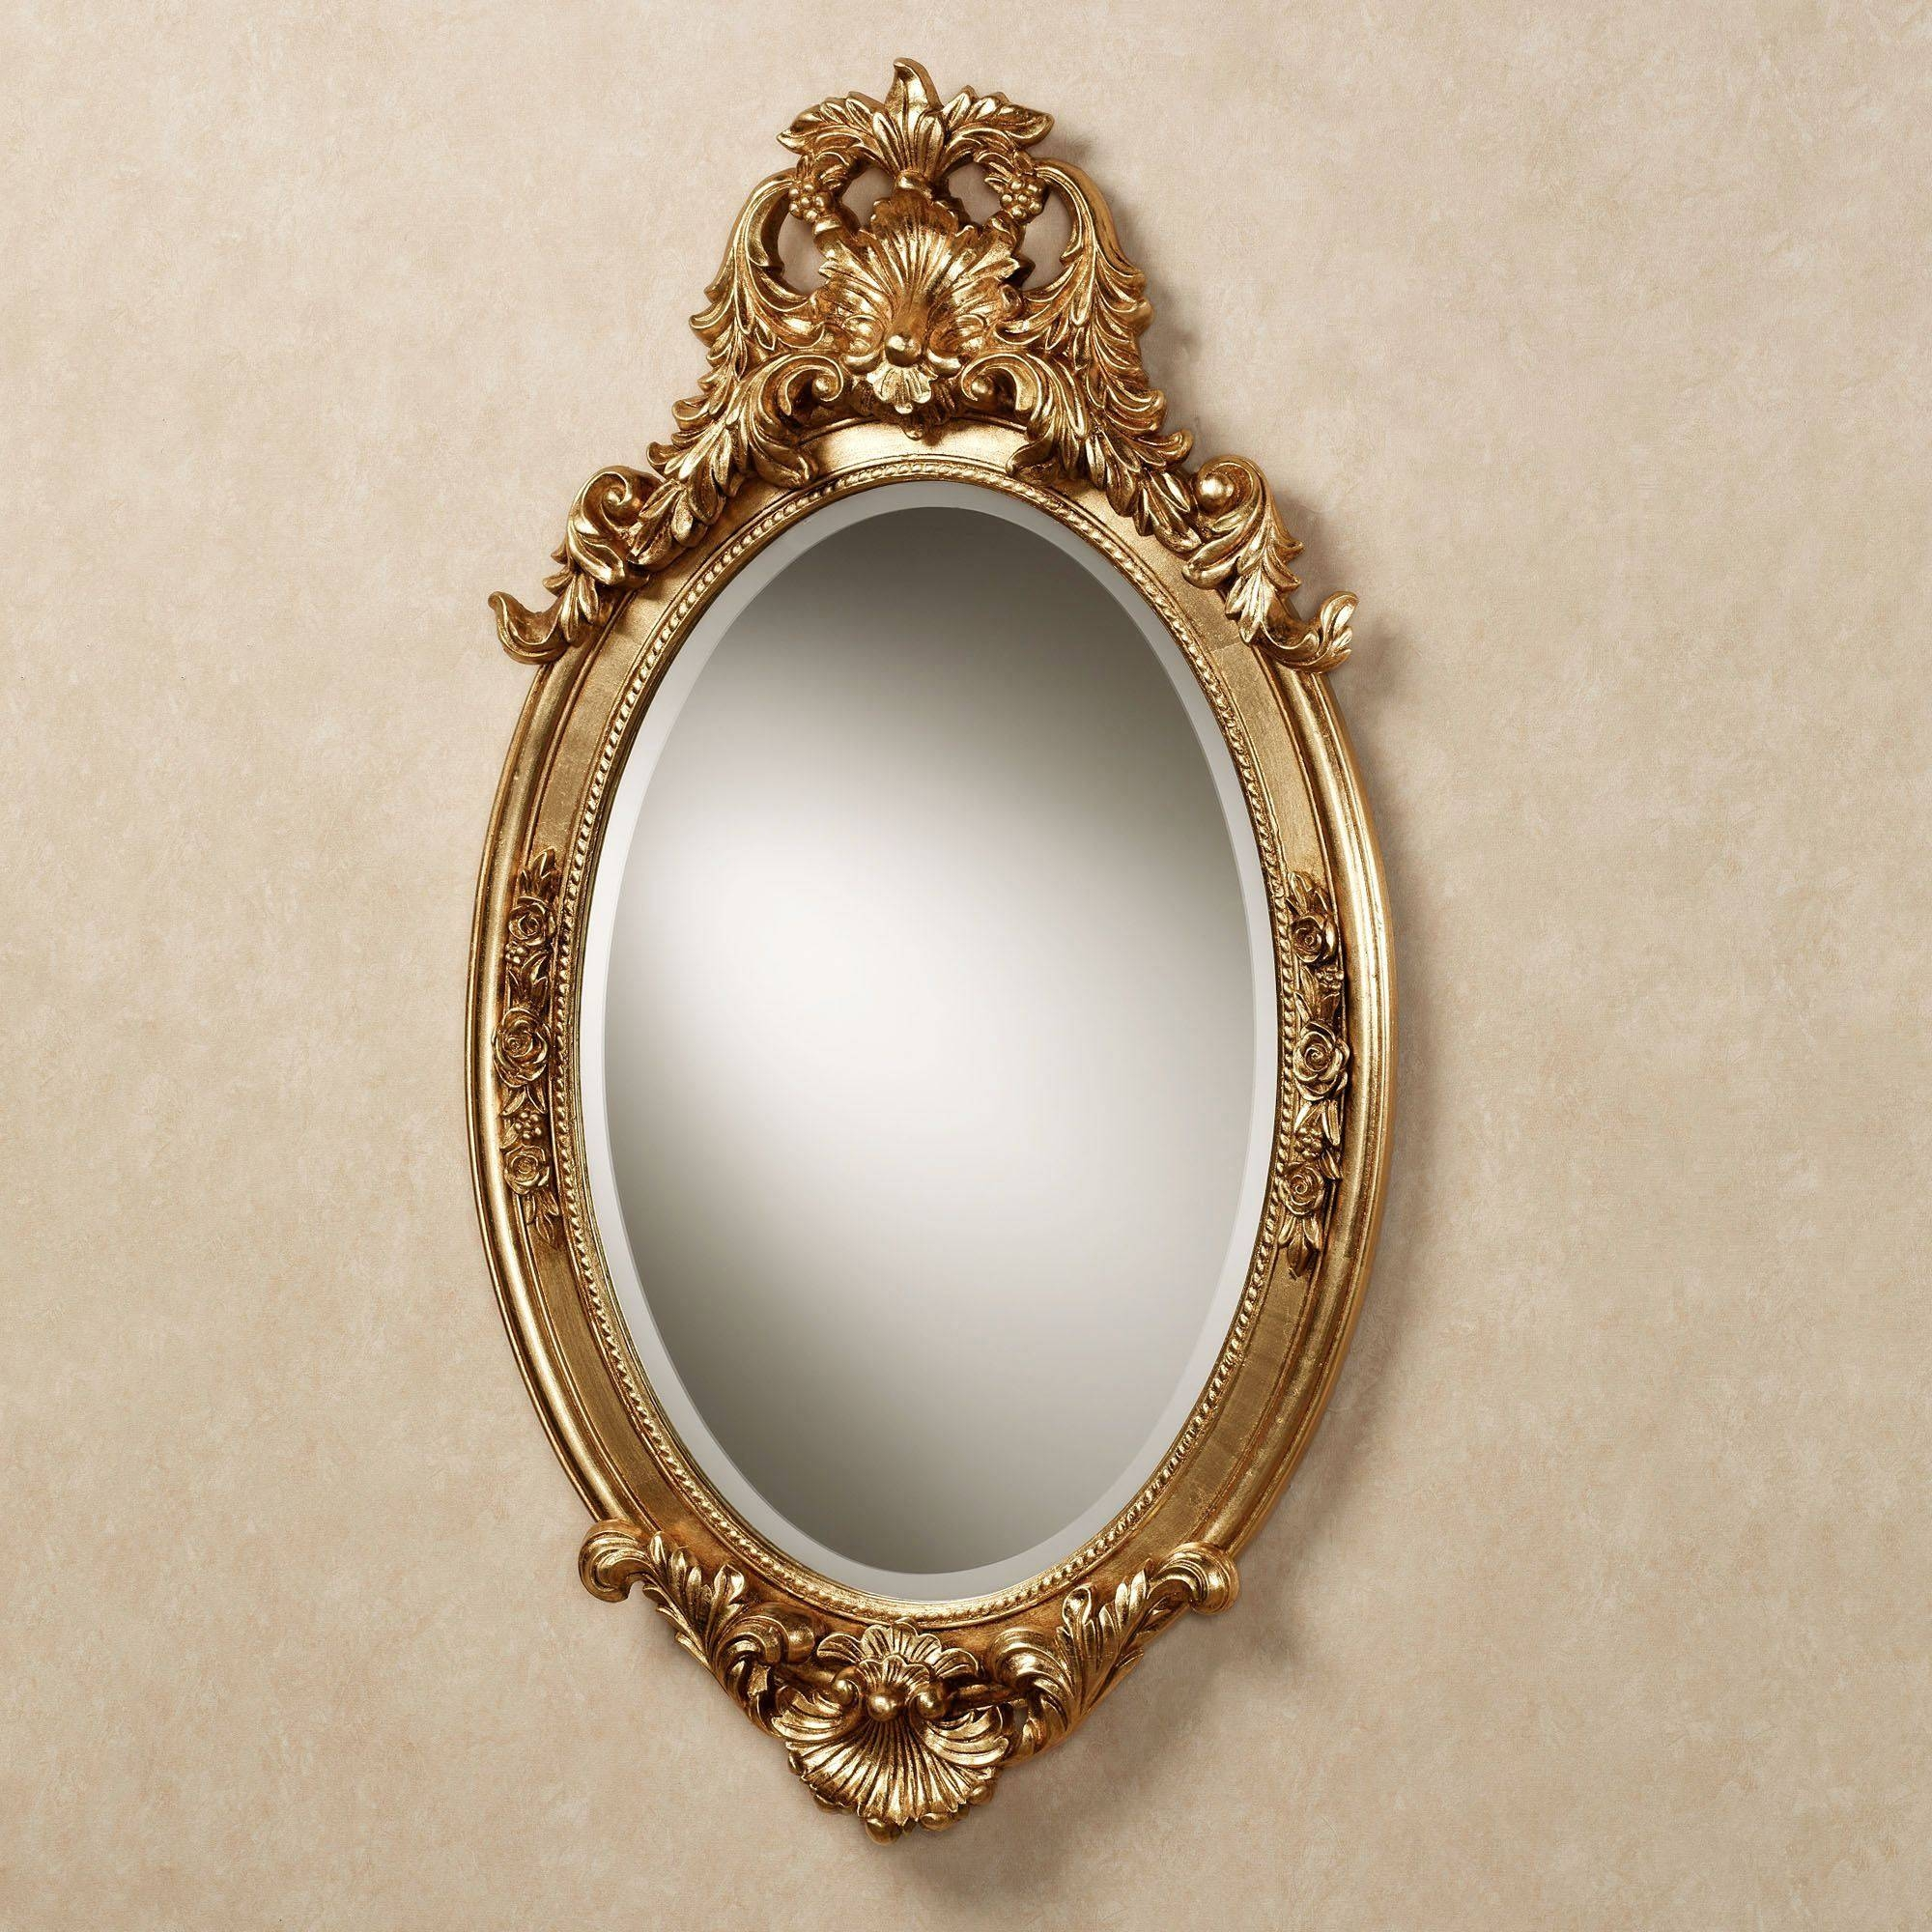 Hallandale Acanthus Leaf Oval Wall Mirror in Ornate Oval Mirrors (Image 8 of 25)